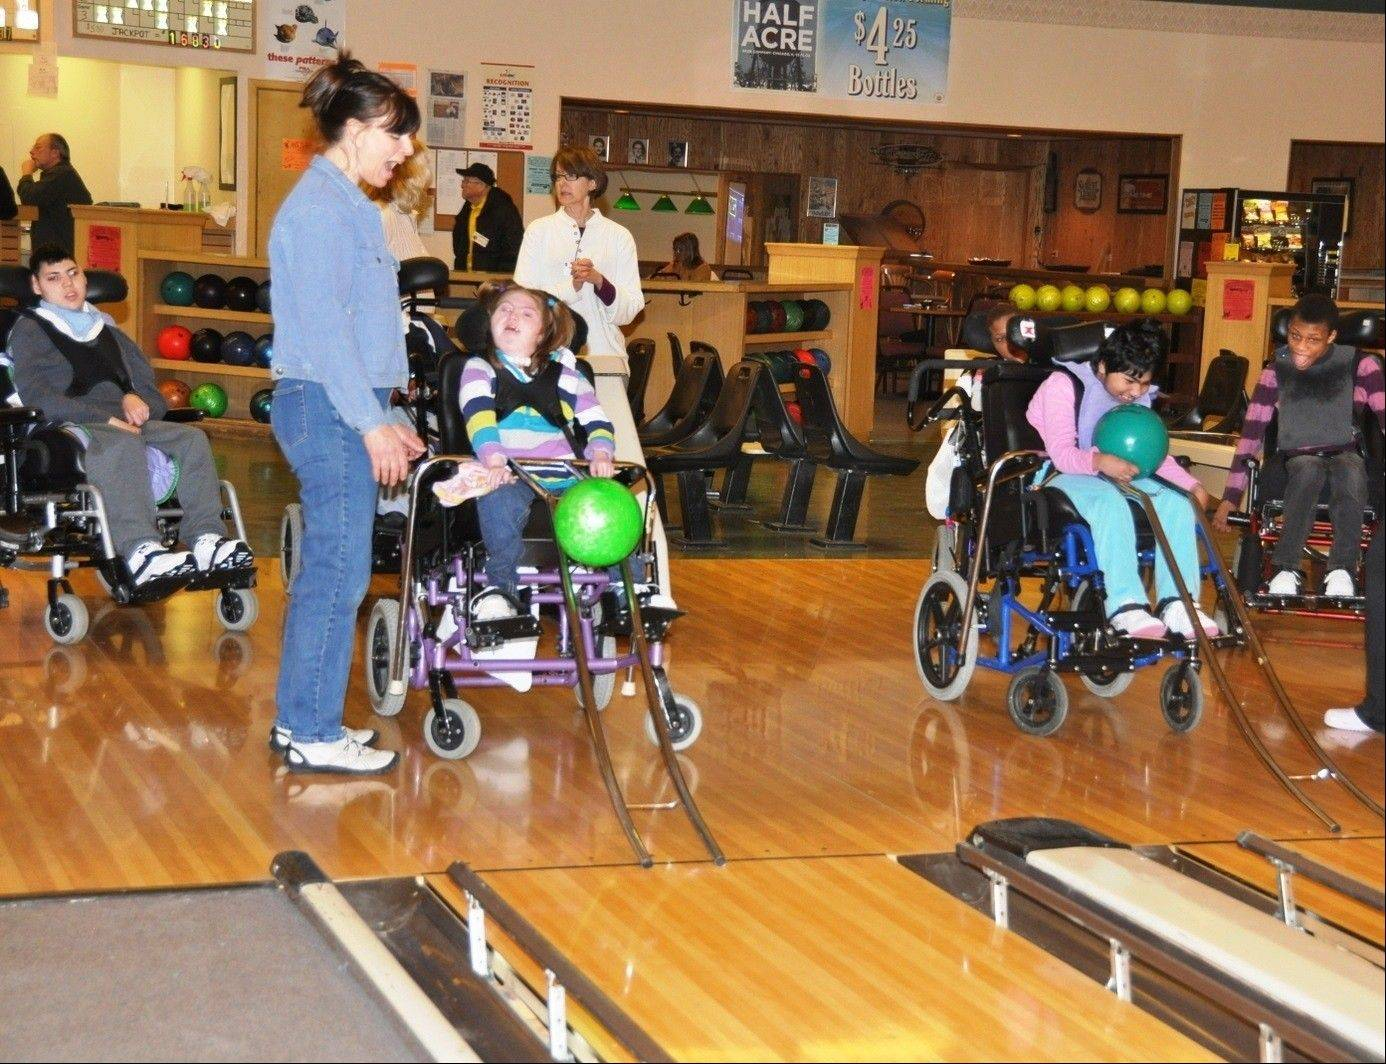 Using special equipment, residents of Little Angels Center for Exceptional Care in Elgin bowl during last year's SUPERBowling party and fundraiser at Arlington Lanes in Arlington Heights. Sponsored by the Schaumburg-Hoffman Lions Club, this year's event, which starts at 4 p.m. on Super Bowl Sunday, features bowling, food, an auction and TVs showing the game.